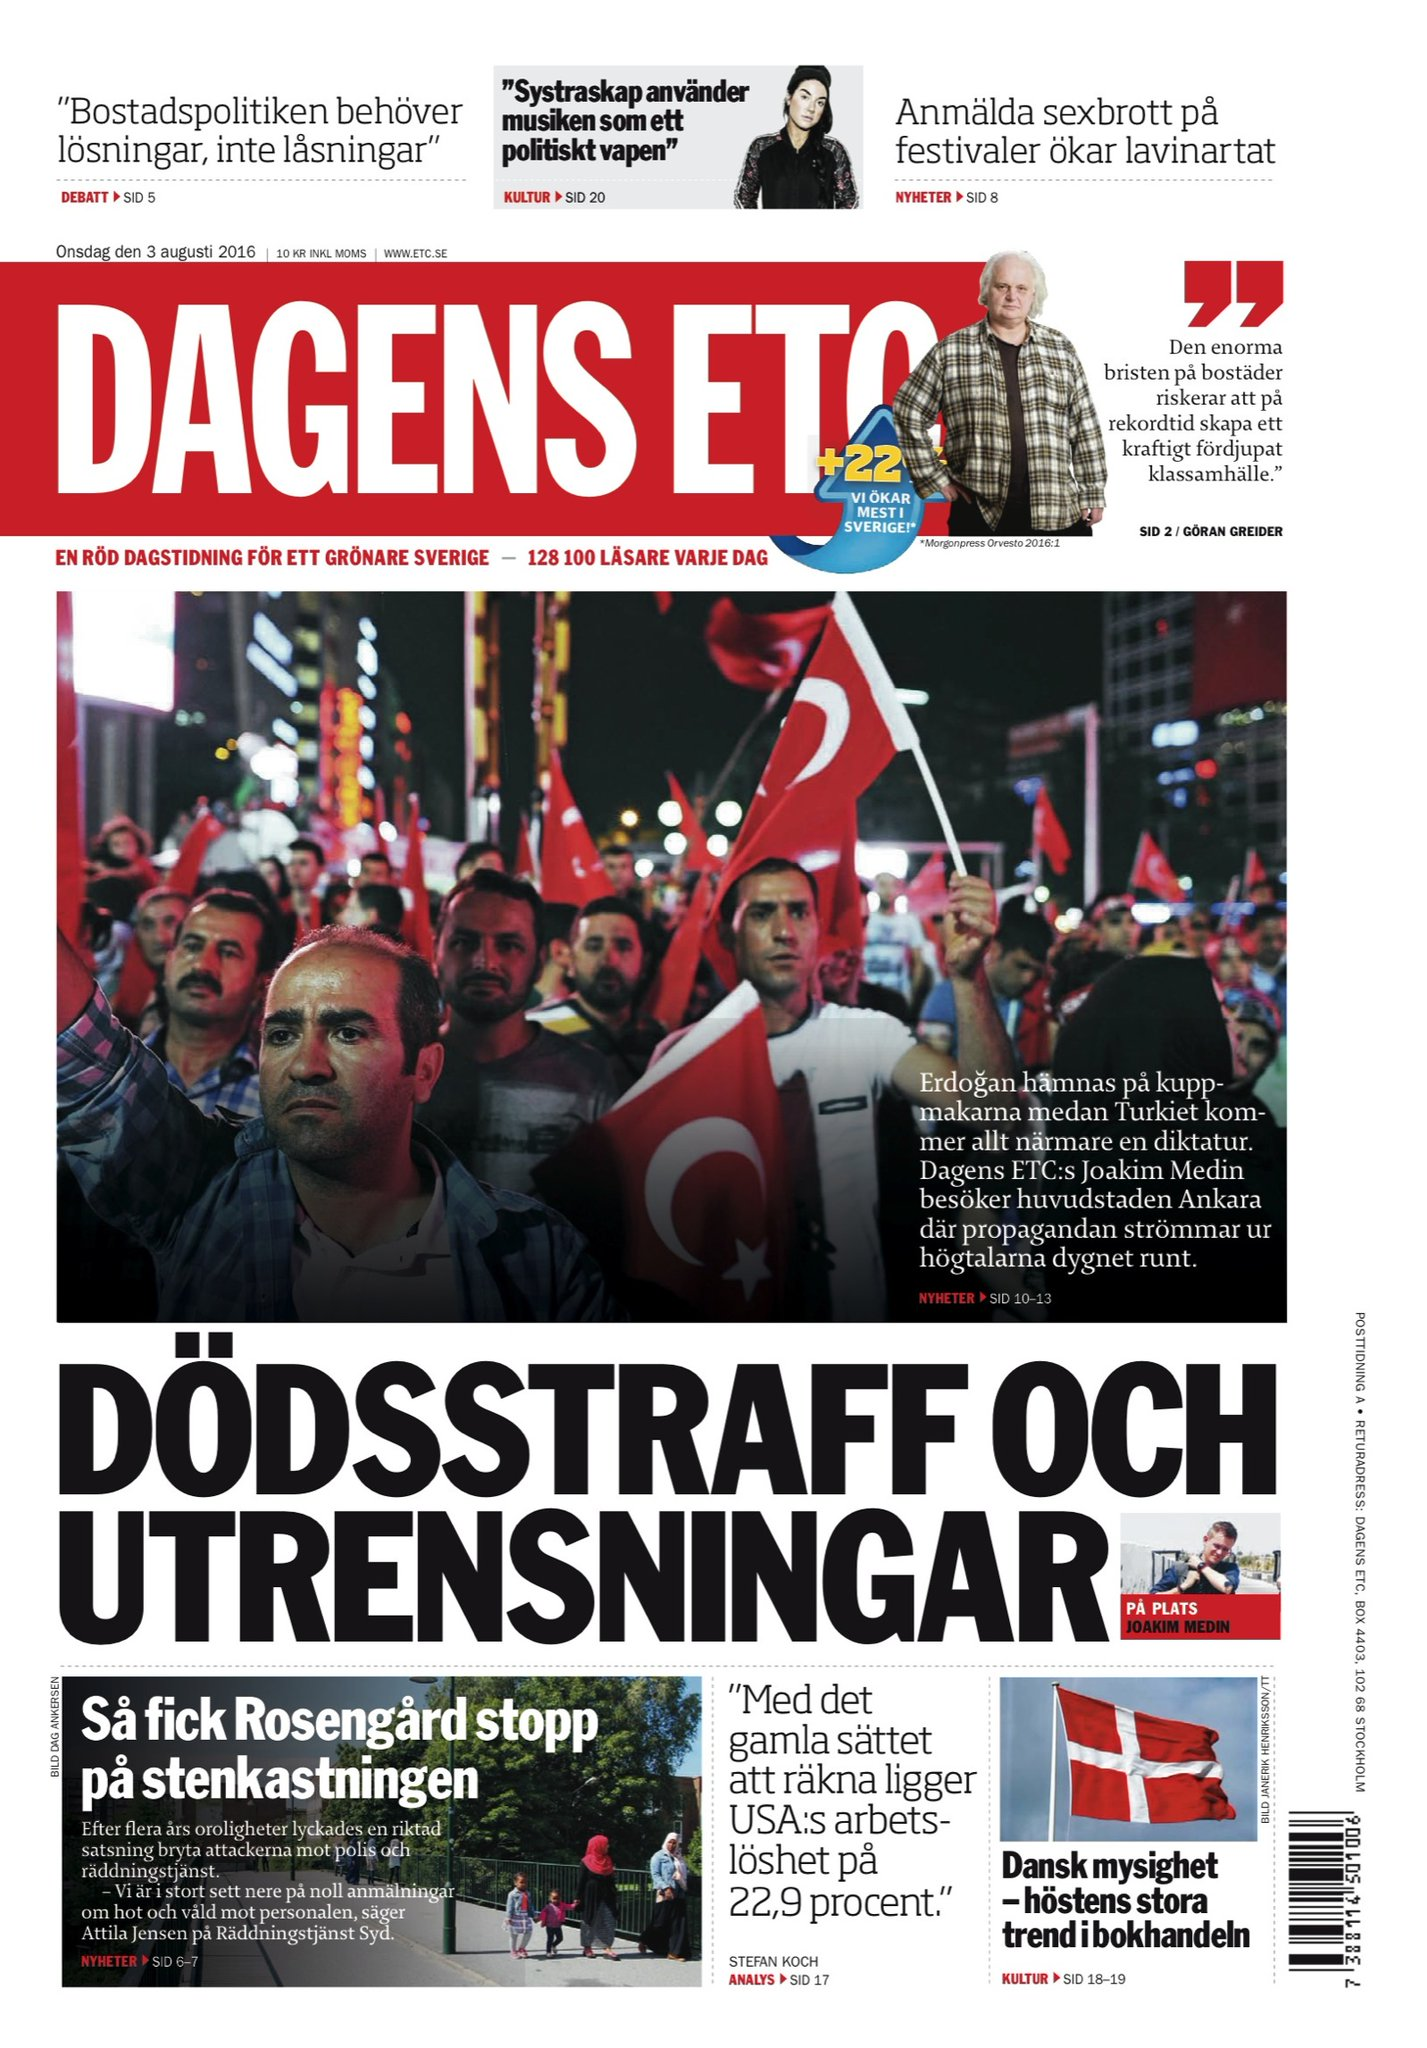 Turkiet, Dagens ETC aug 2016